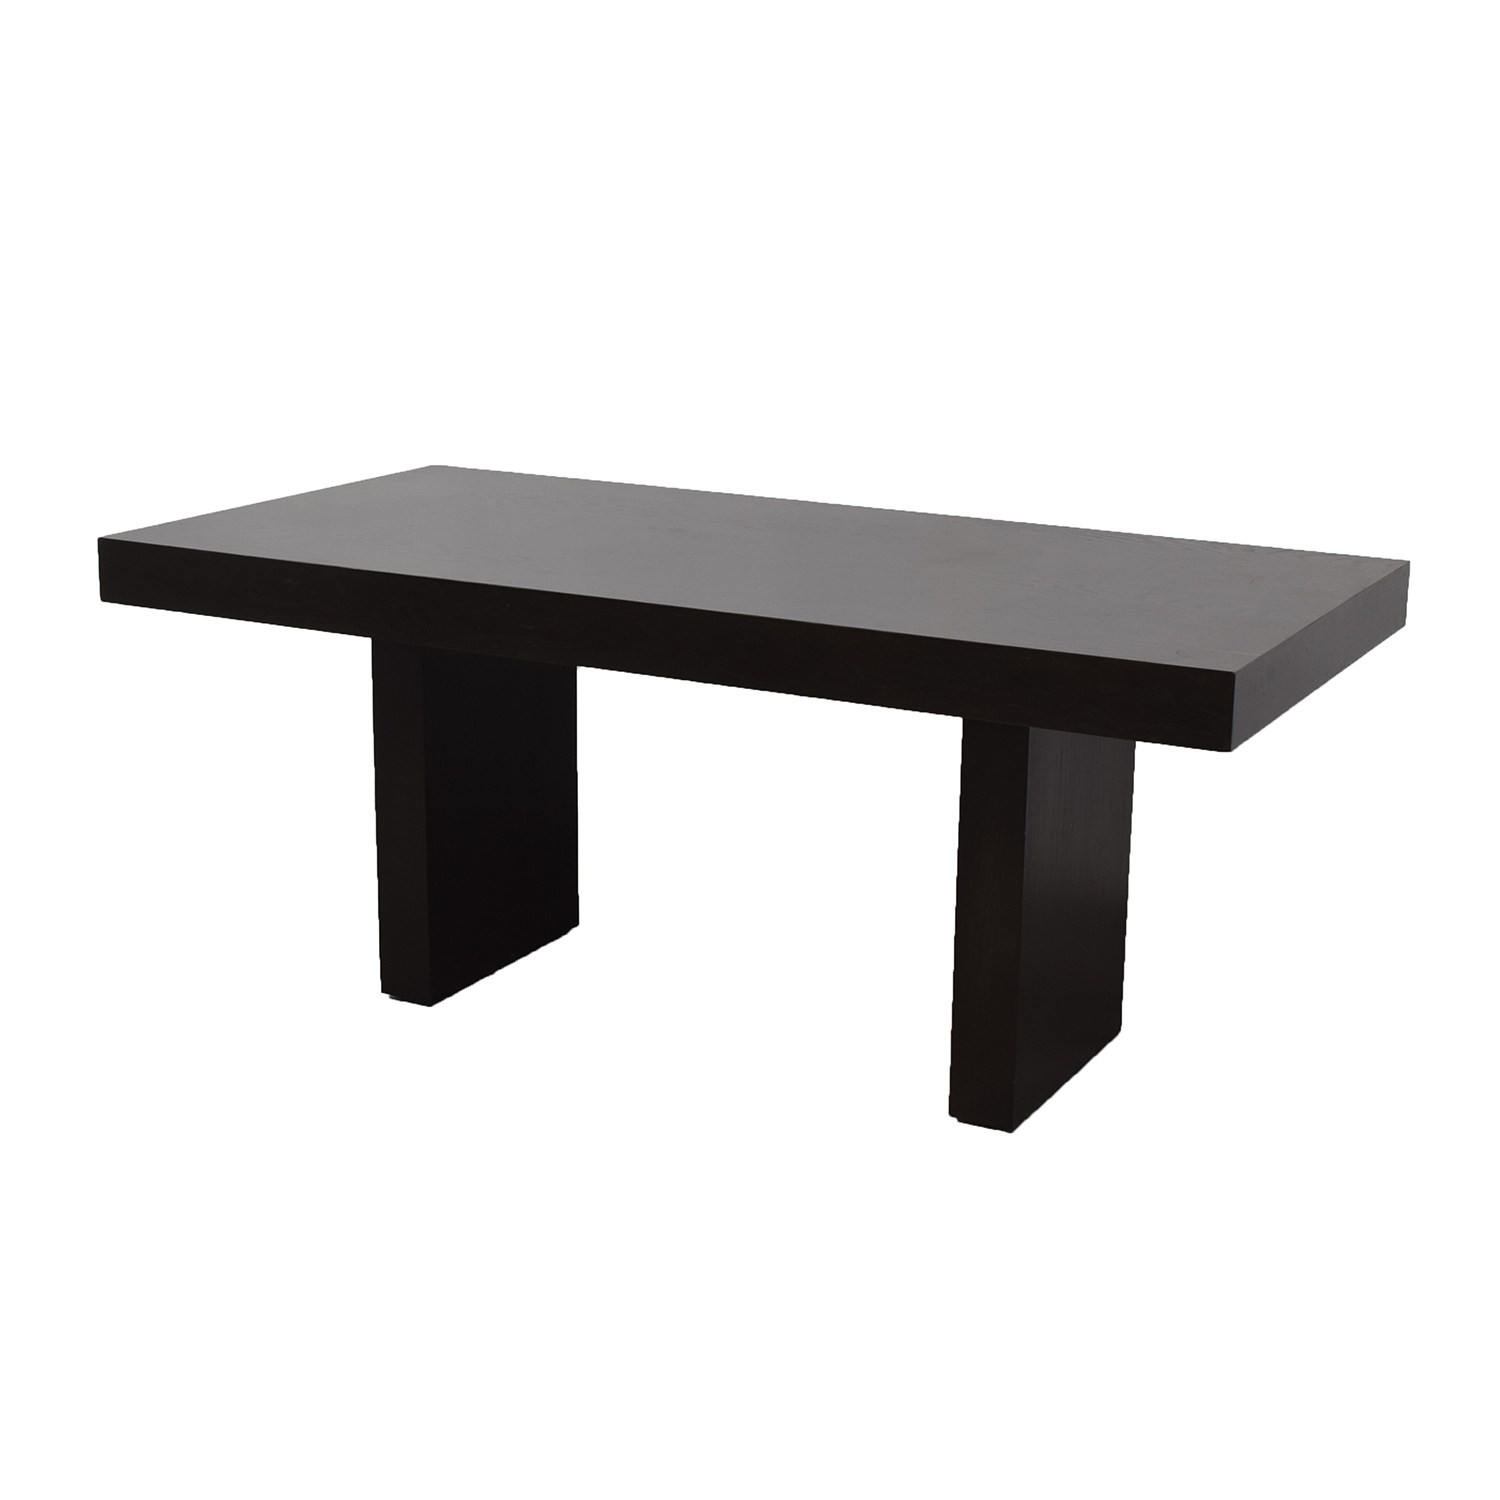 89% OFF - West Elm West Elm Hayden Black Dining Table / Tables